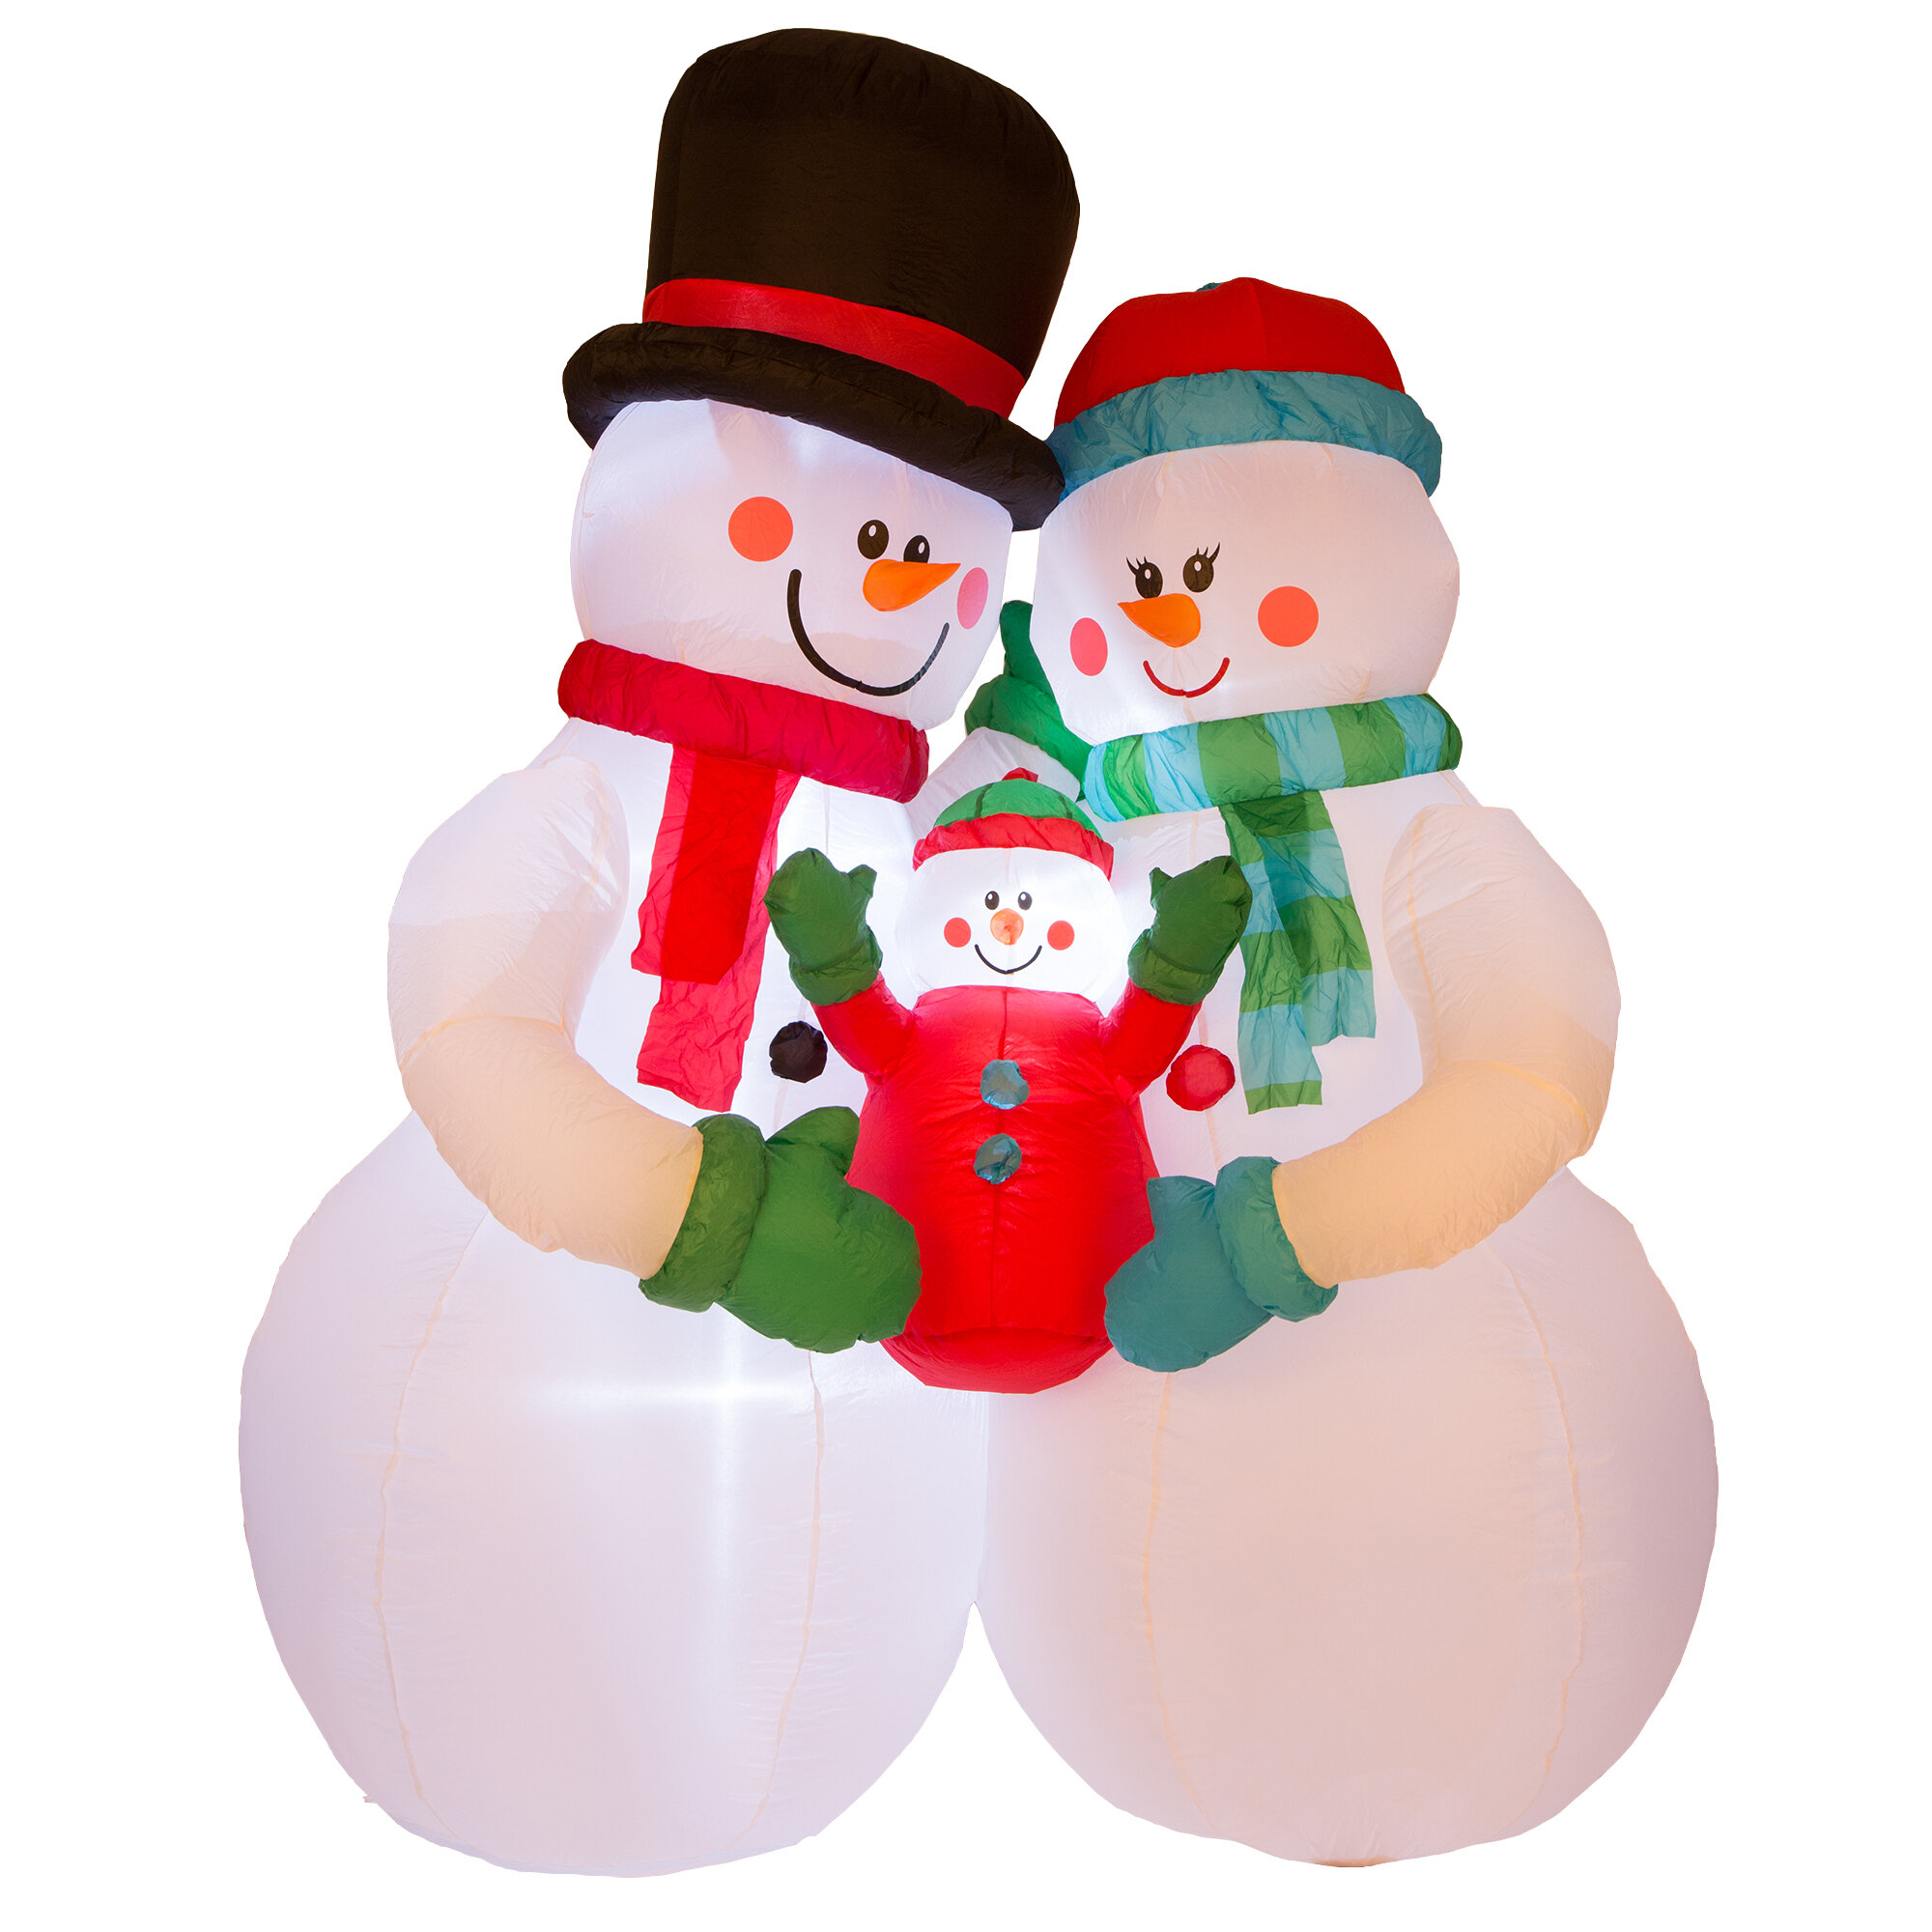 dancing figure up snowman decorations light and decor christmas animated singing